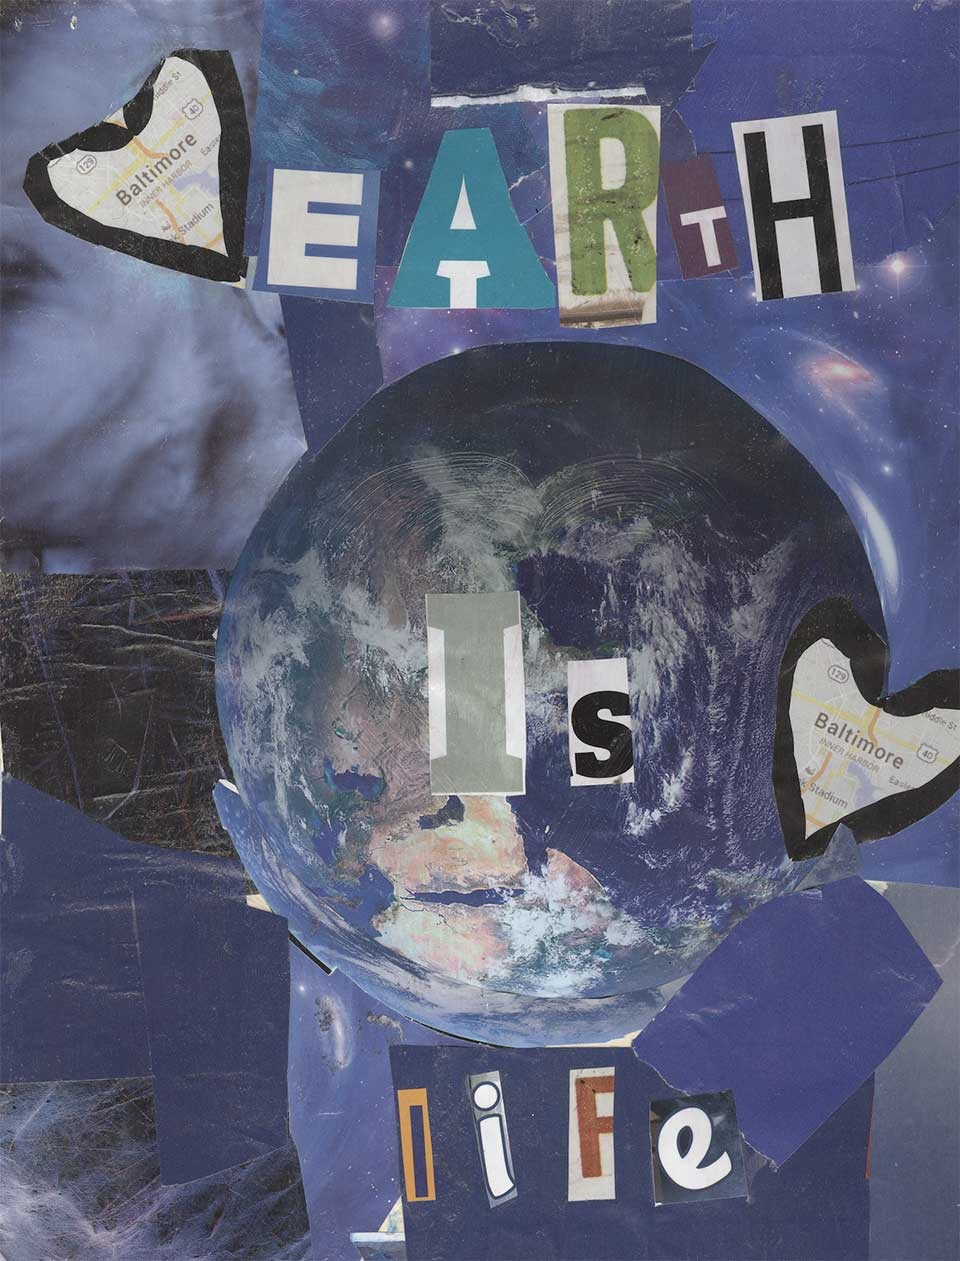 artwork of words on earth